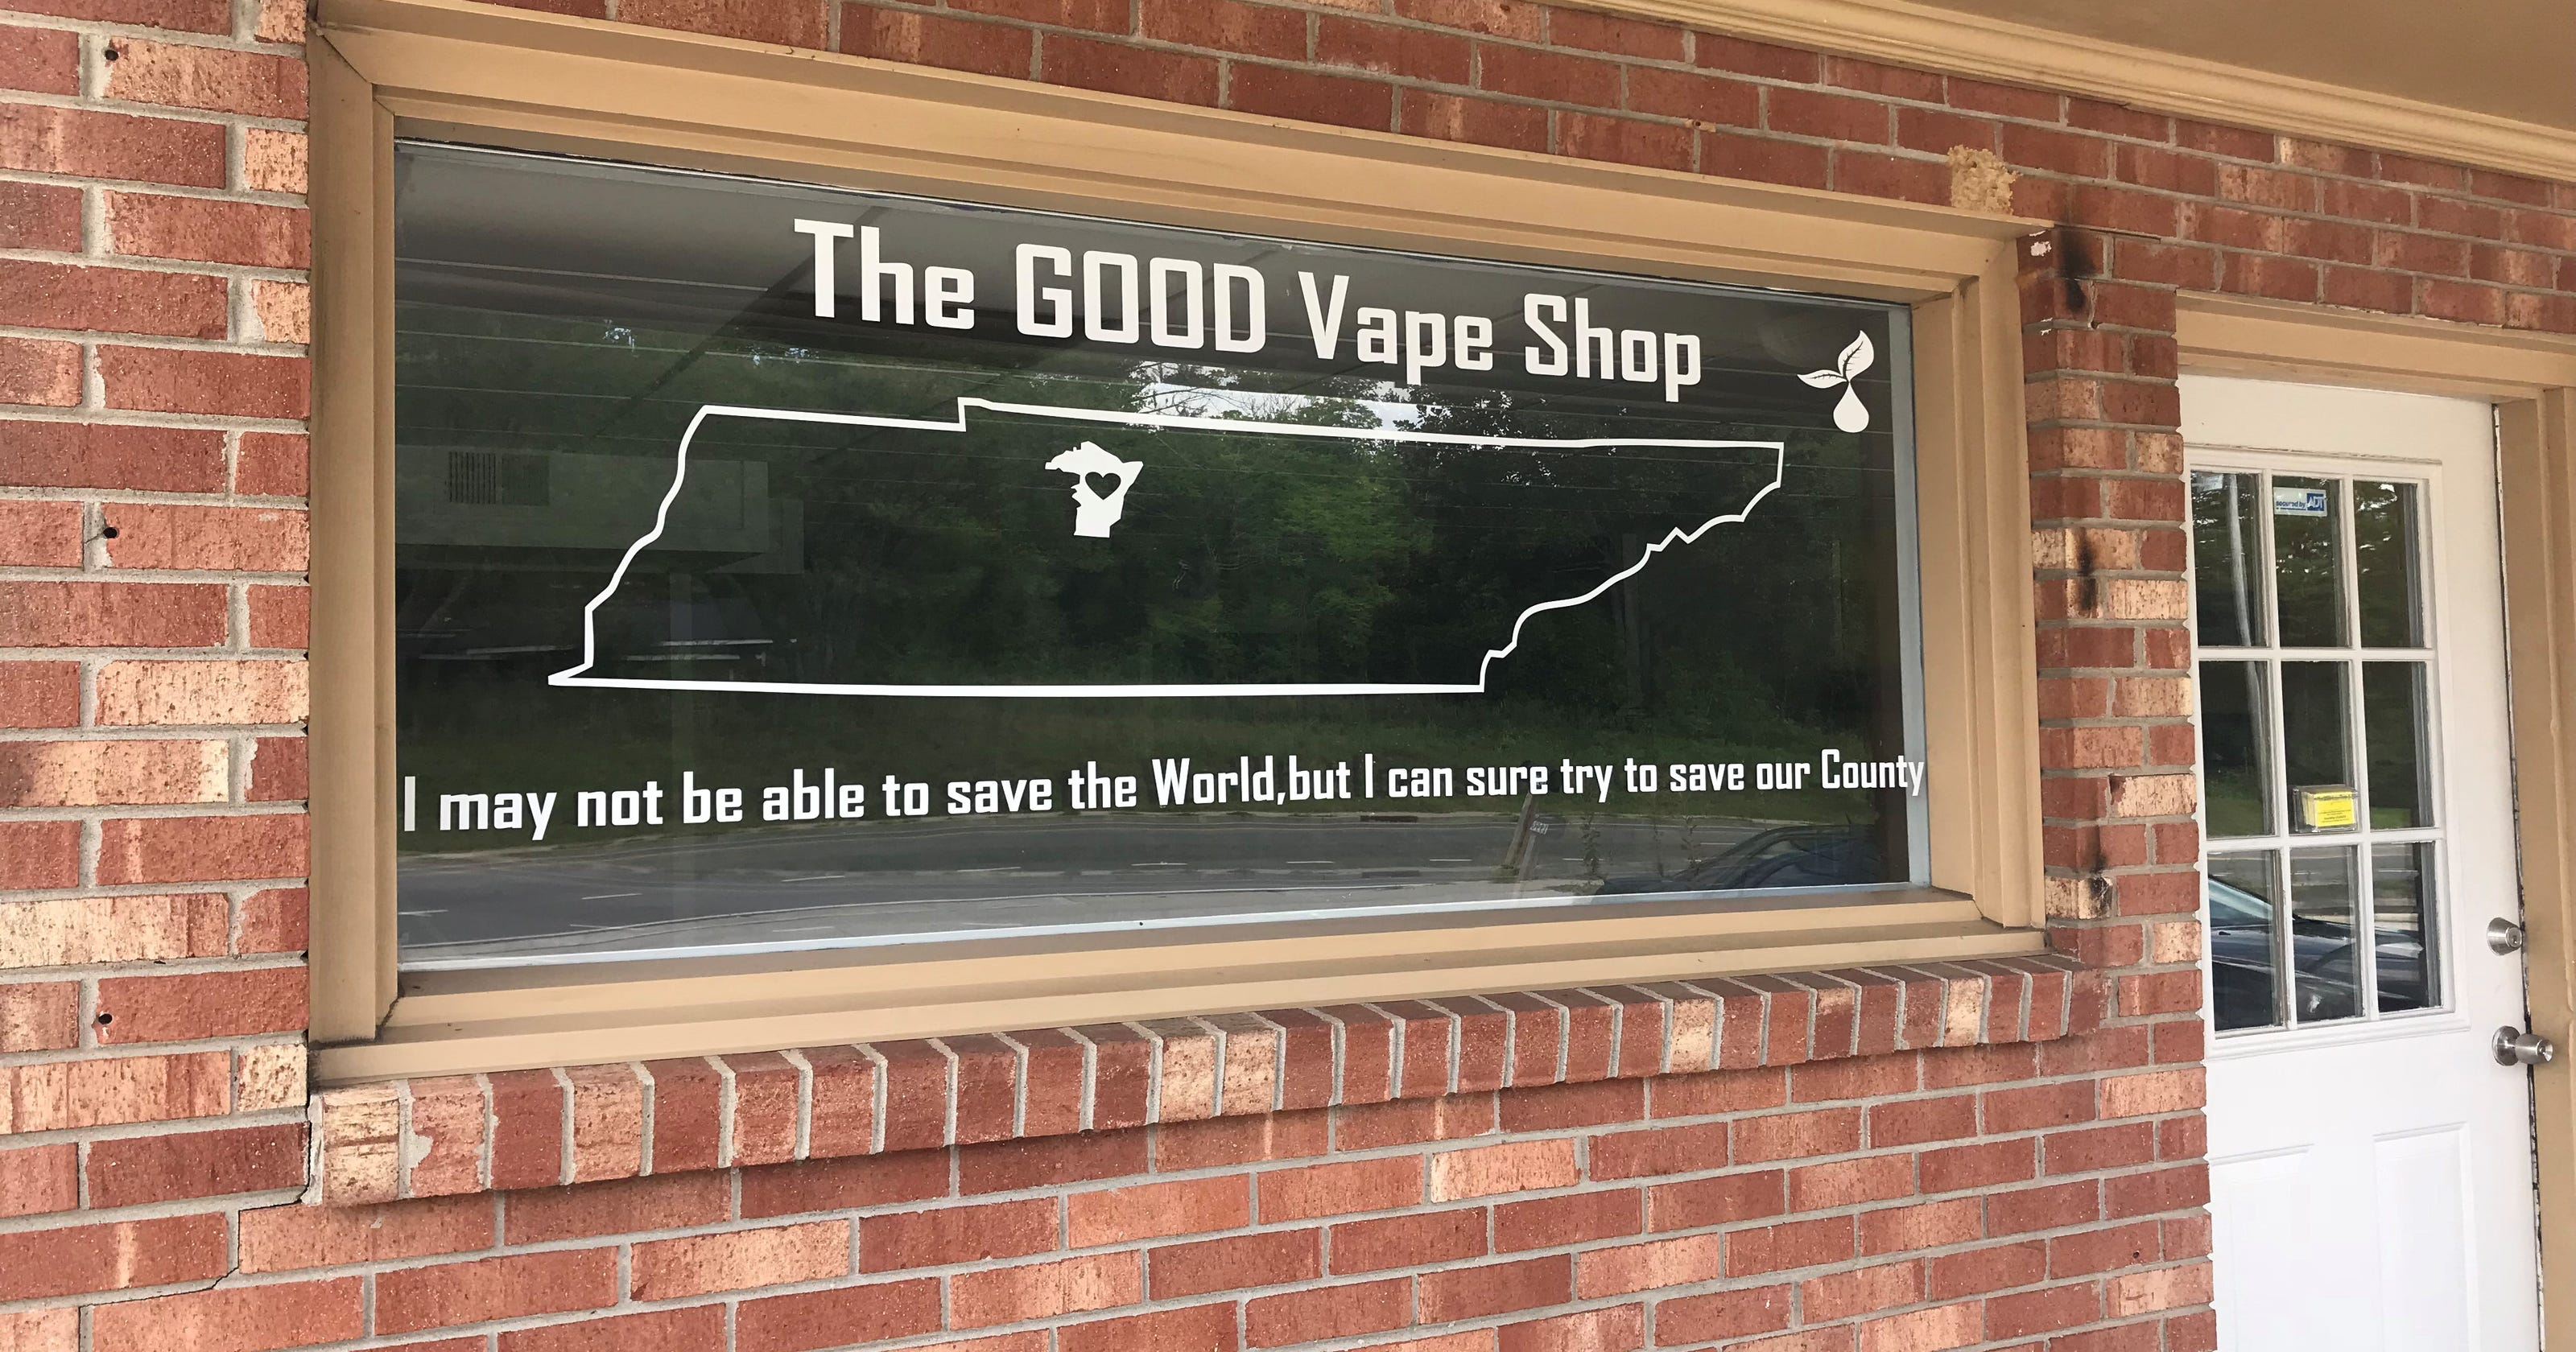 Vape shop to open in Cheatham County, owner wants to 'help other people'